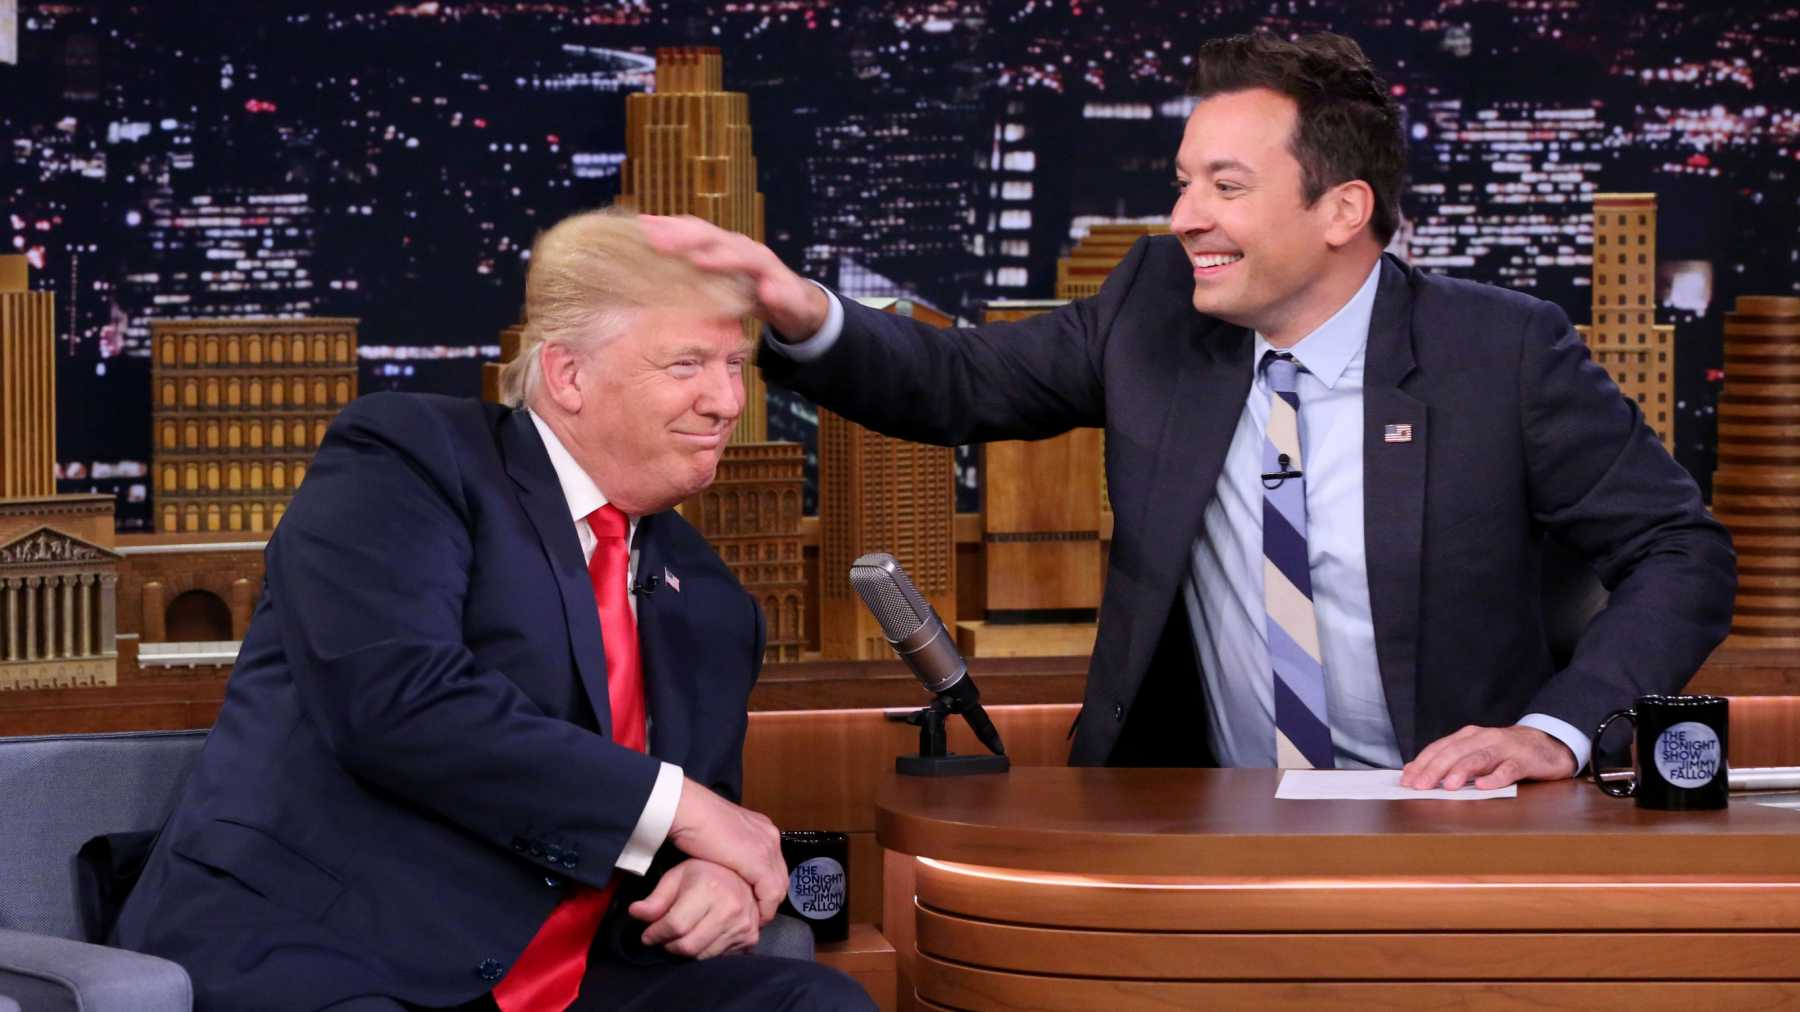 Jimmy Fallon Has Trump Interview Regrets | Jimmy Fallon